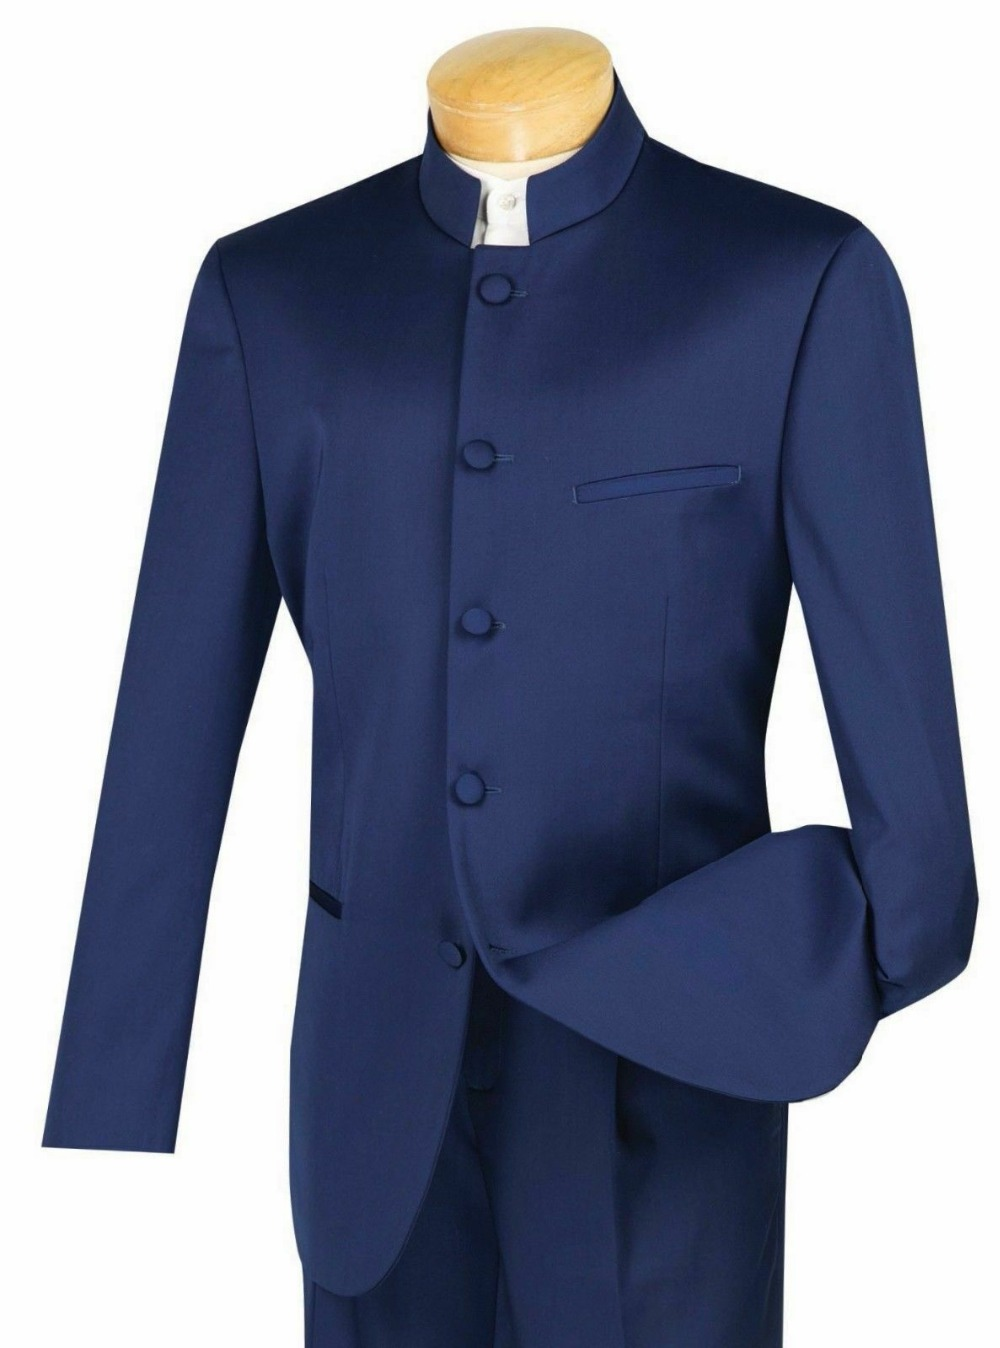 Men's Navy Blue Banded Collar 5 Button Classic Fit Tuxedo Suit Kung Fu Custom